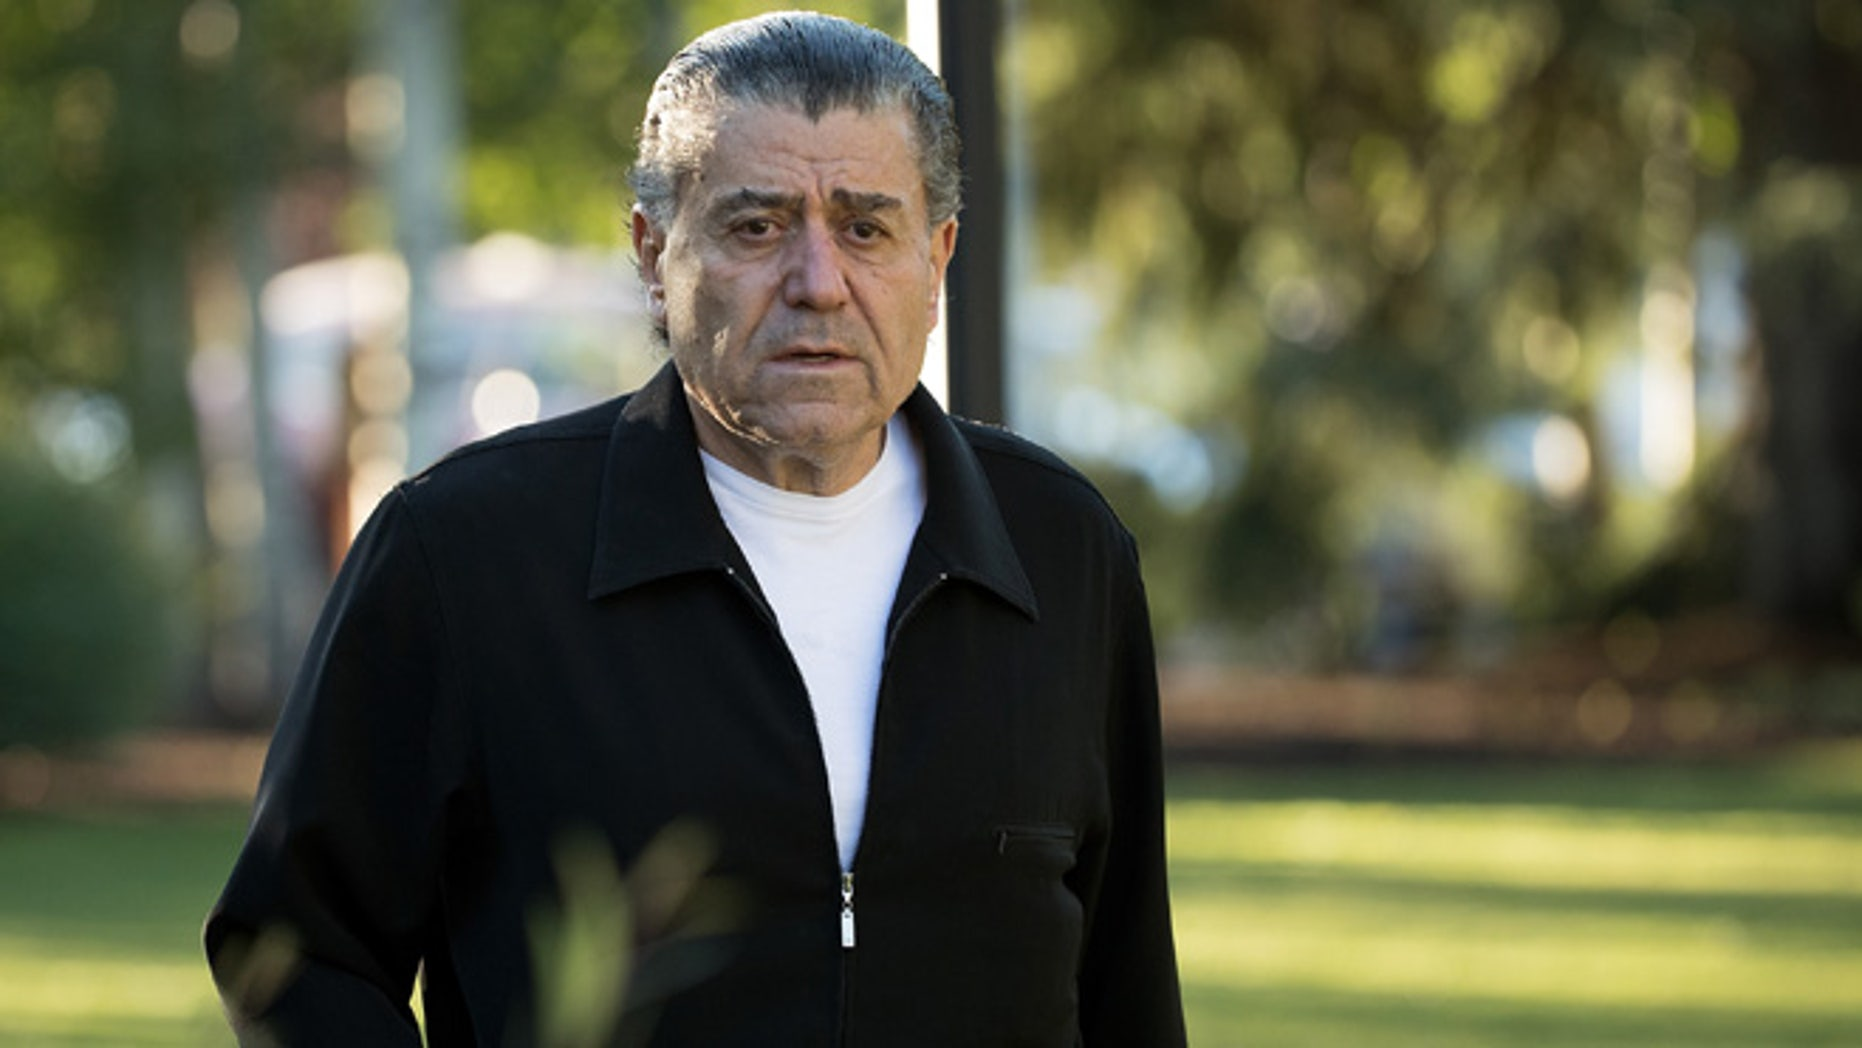 Haim Saban, chairman and chief executive officer of Saban Capital Group, attends the annual Allen & Company Sun Valley Conference, July 7, 2016 in Sun Valley, Idaho. (Photo by Drew Angerer/Getty Images)